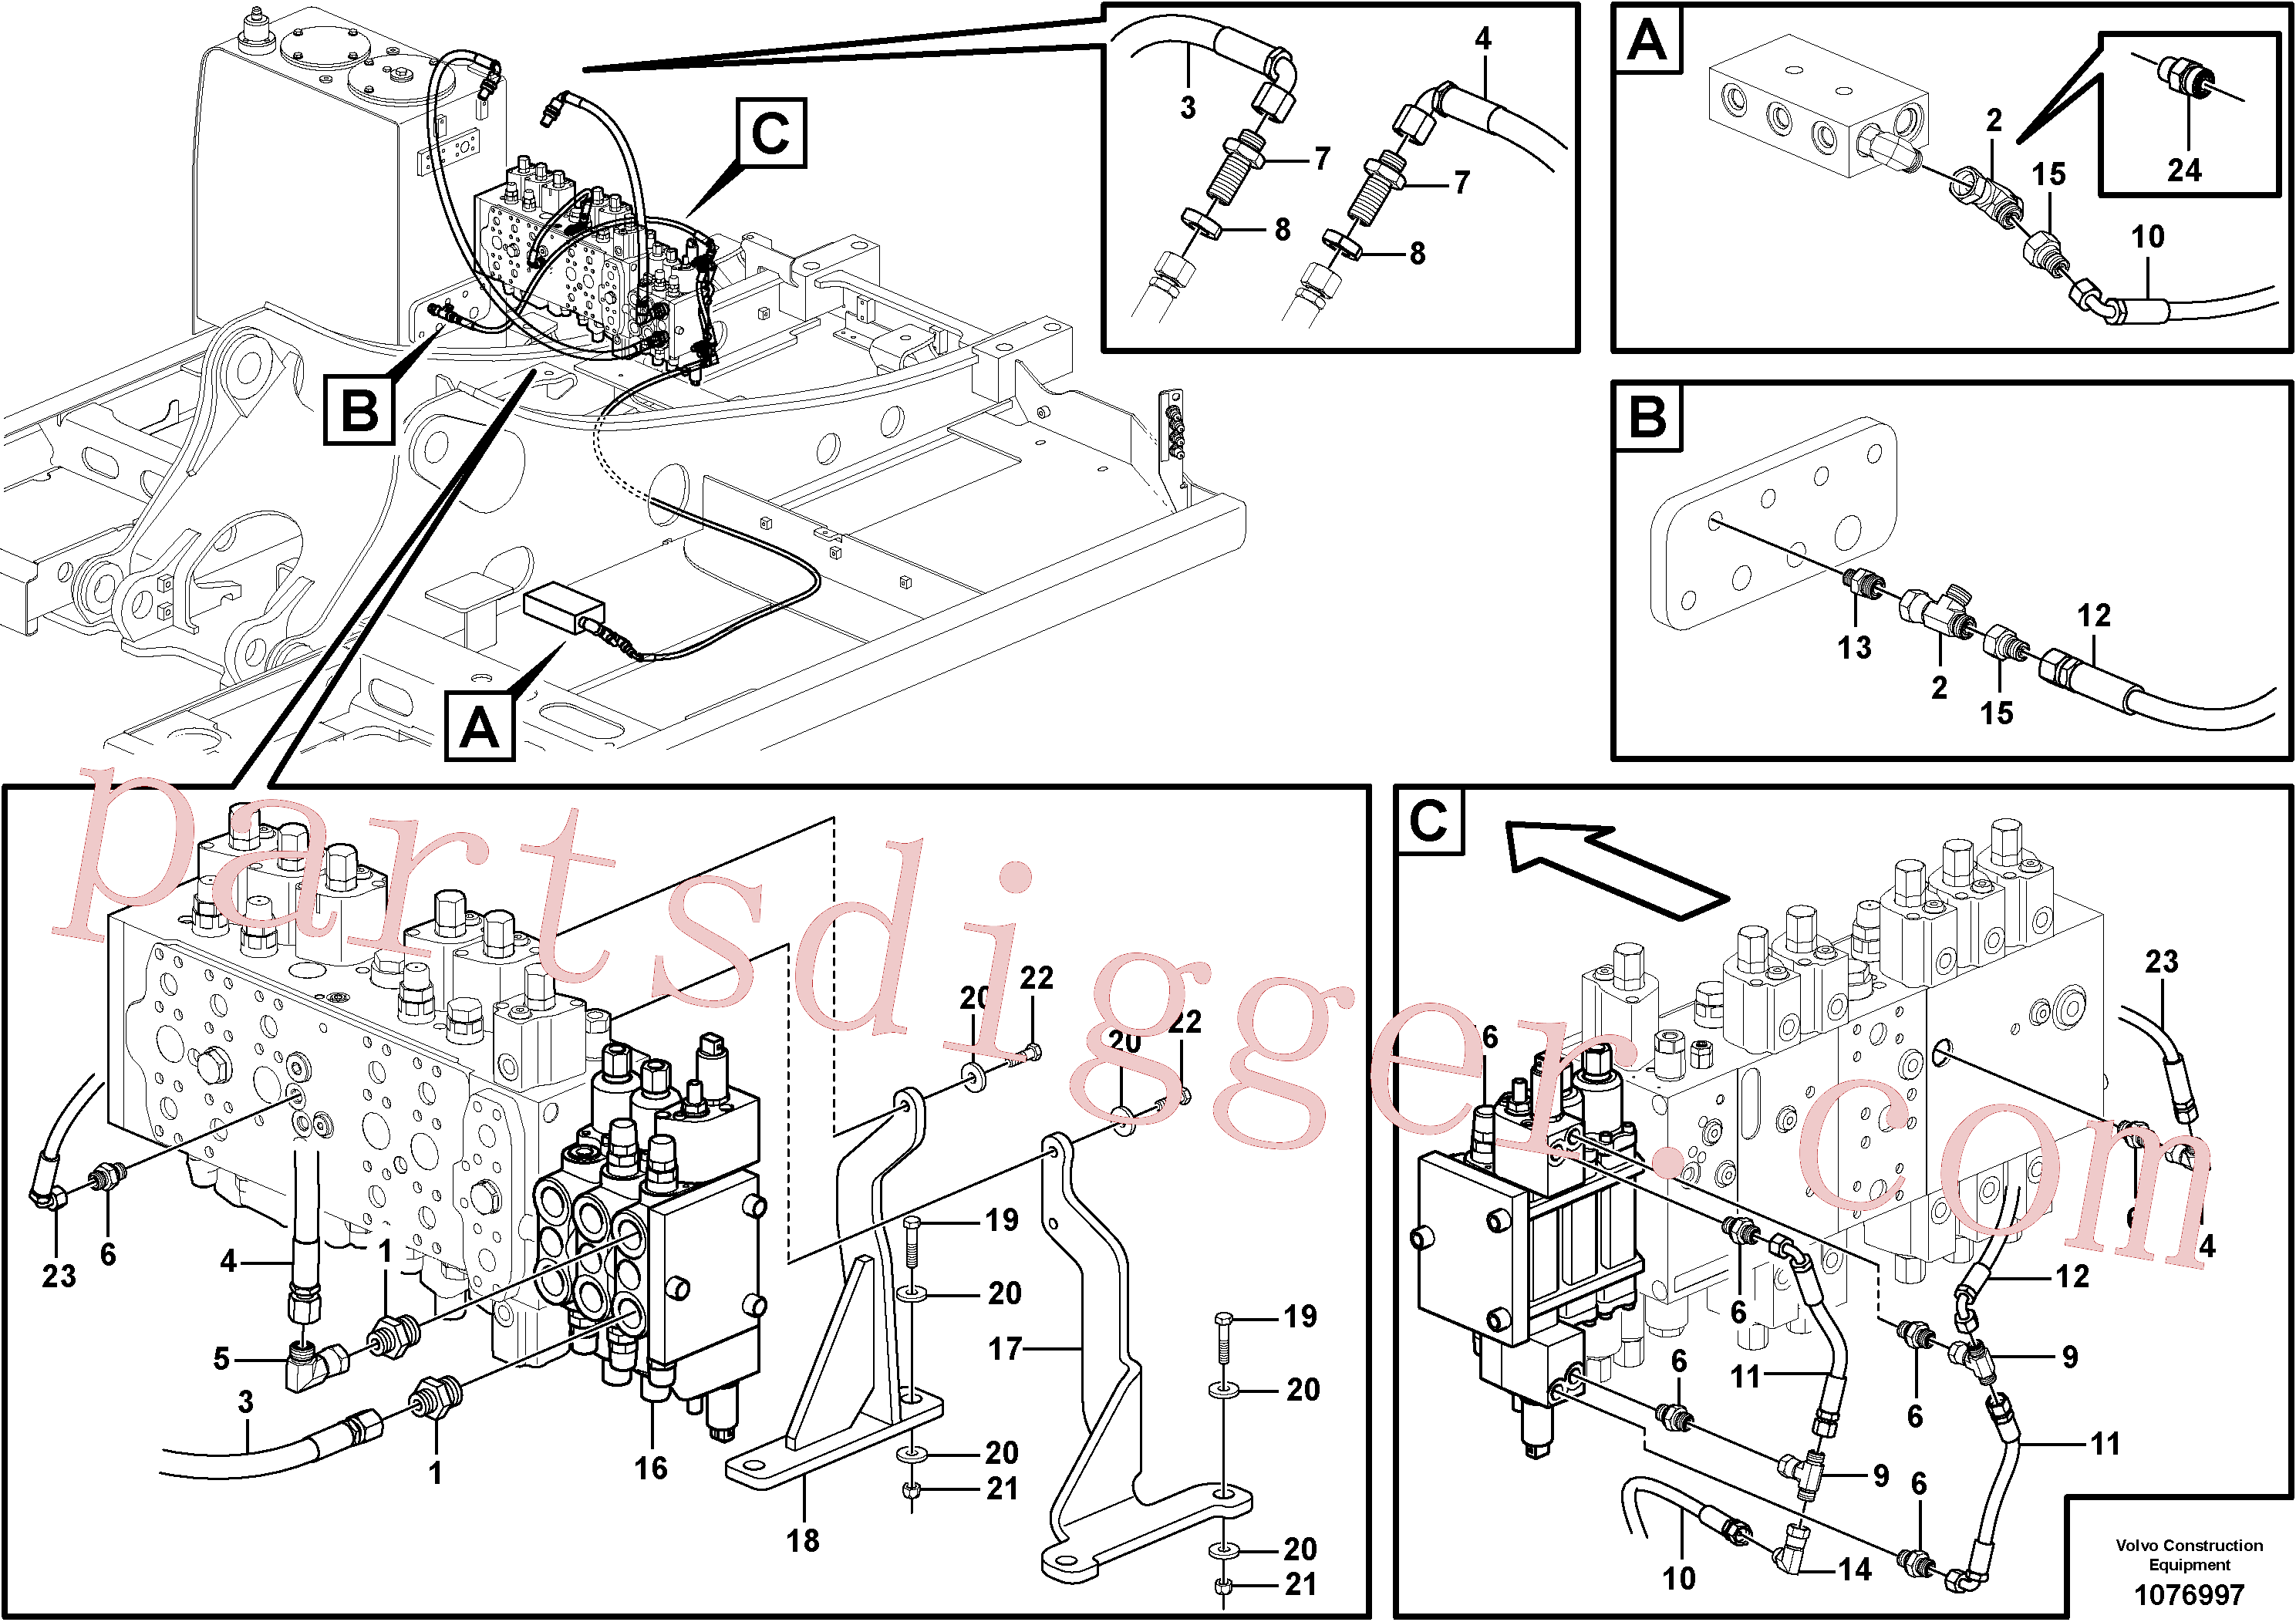 PJ4725004 for Volvo Hydraulic valve.(1076997 assembly)